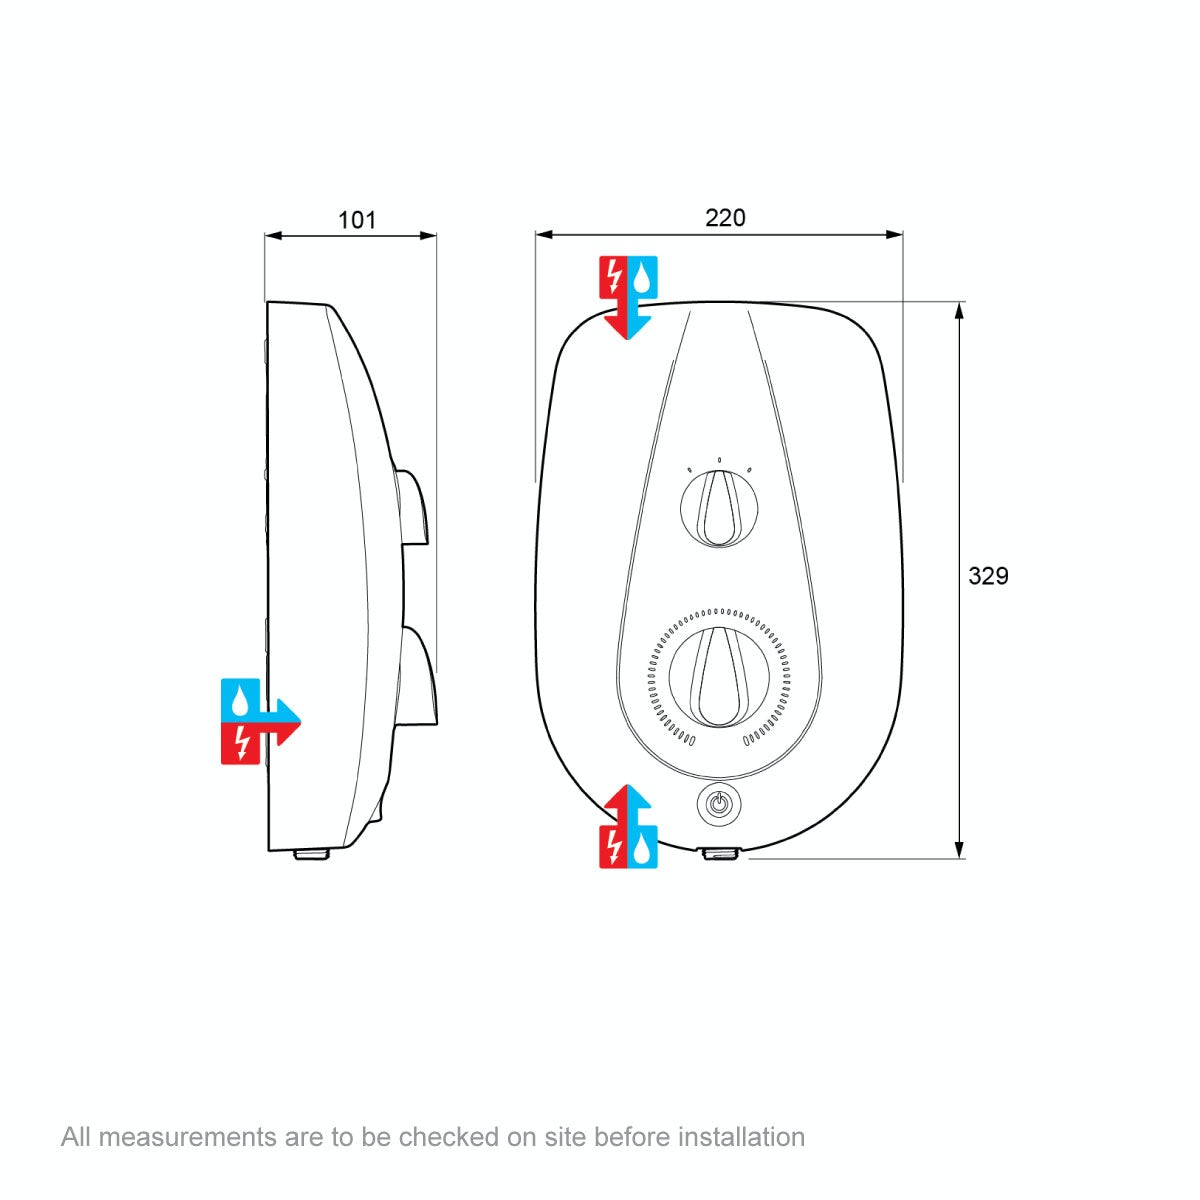 Dimensions for Mira Vie 9.5kw electric shower